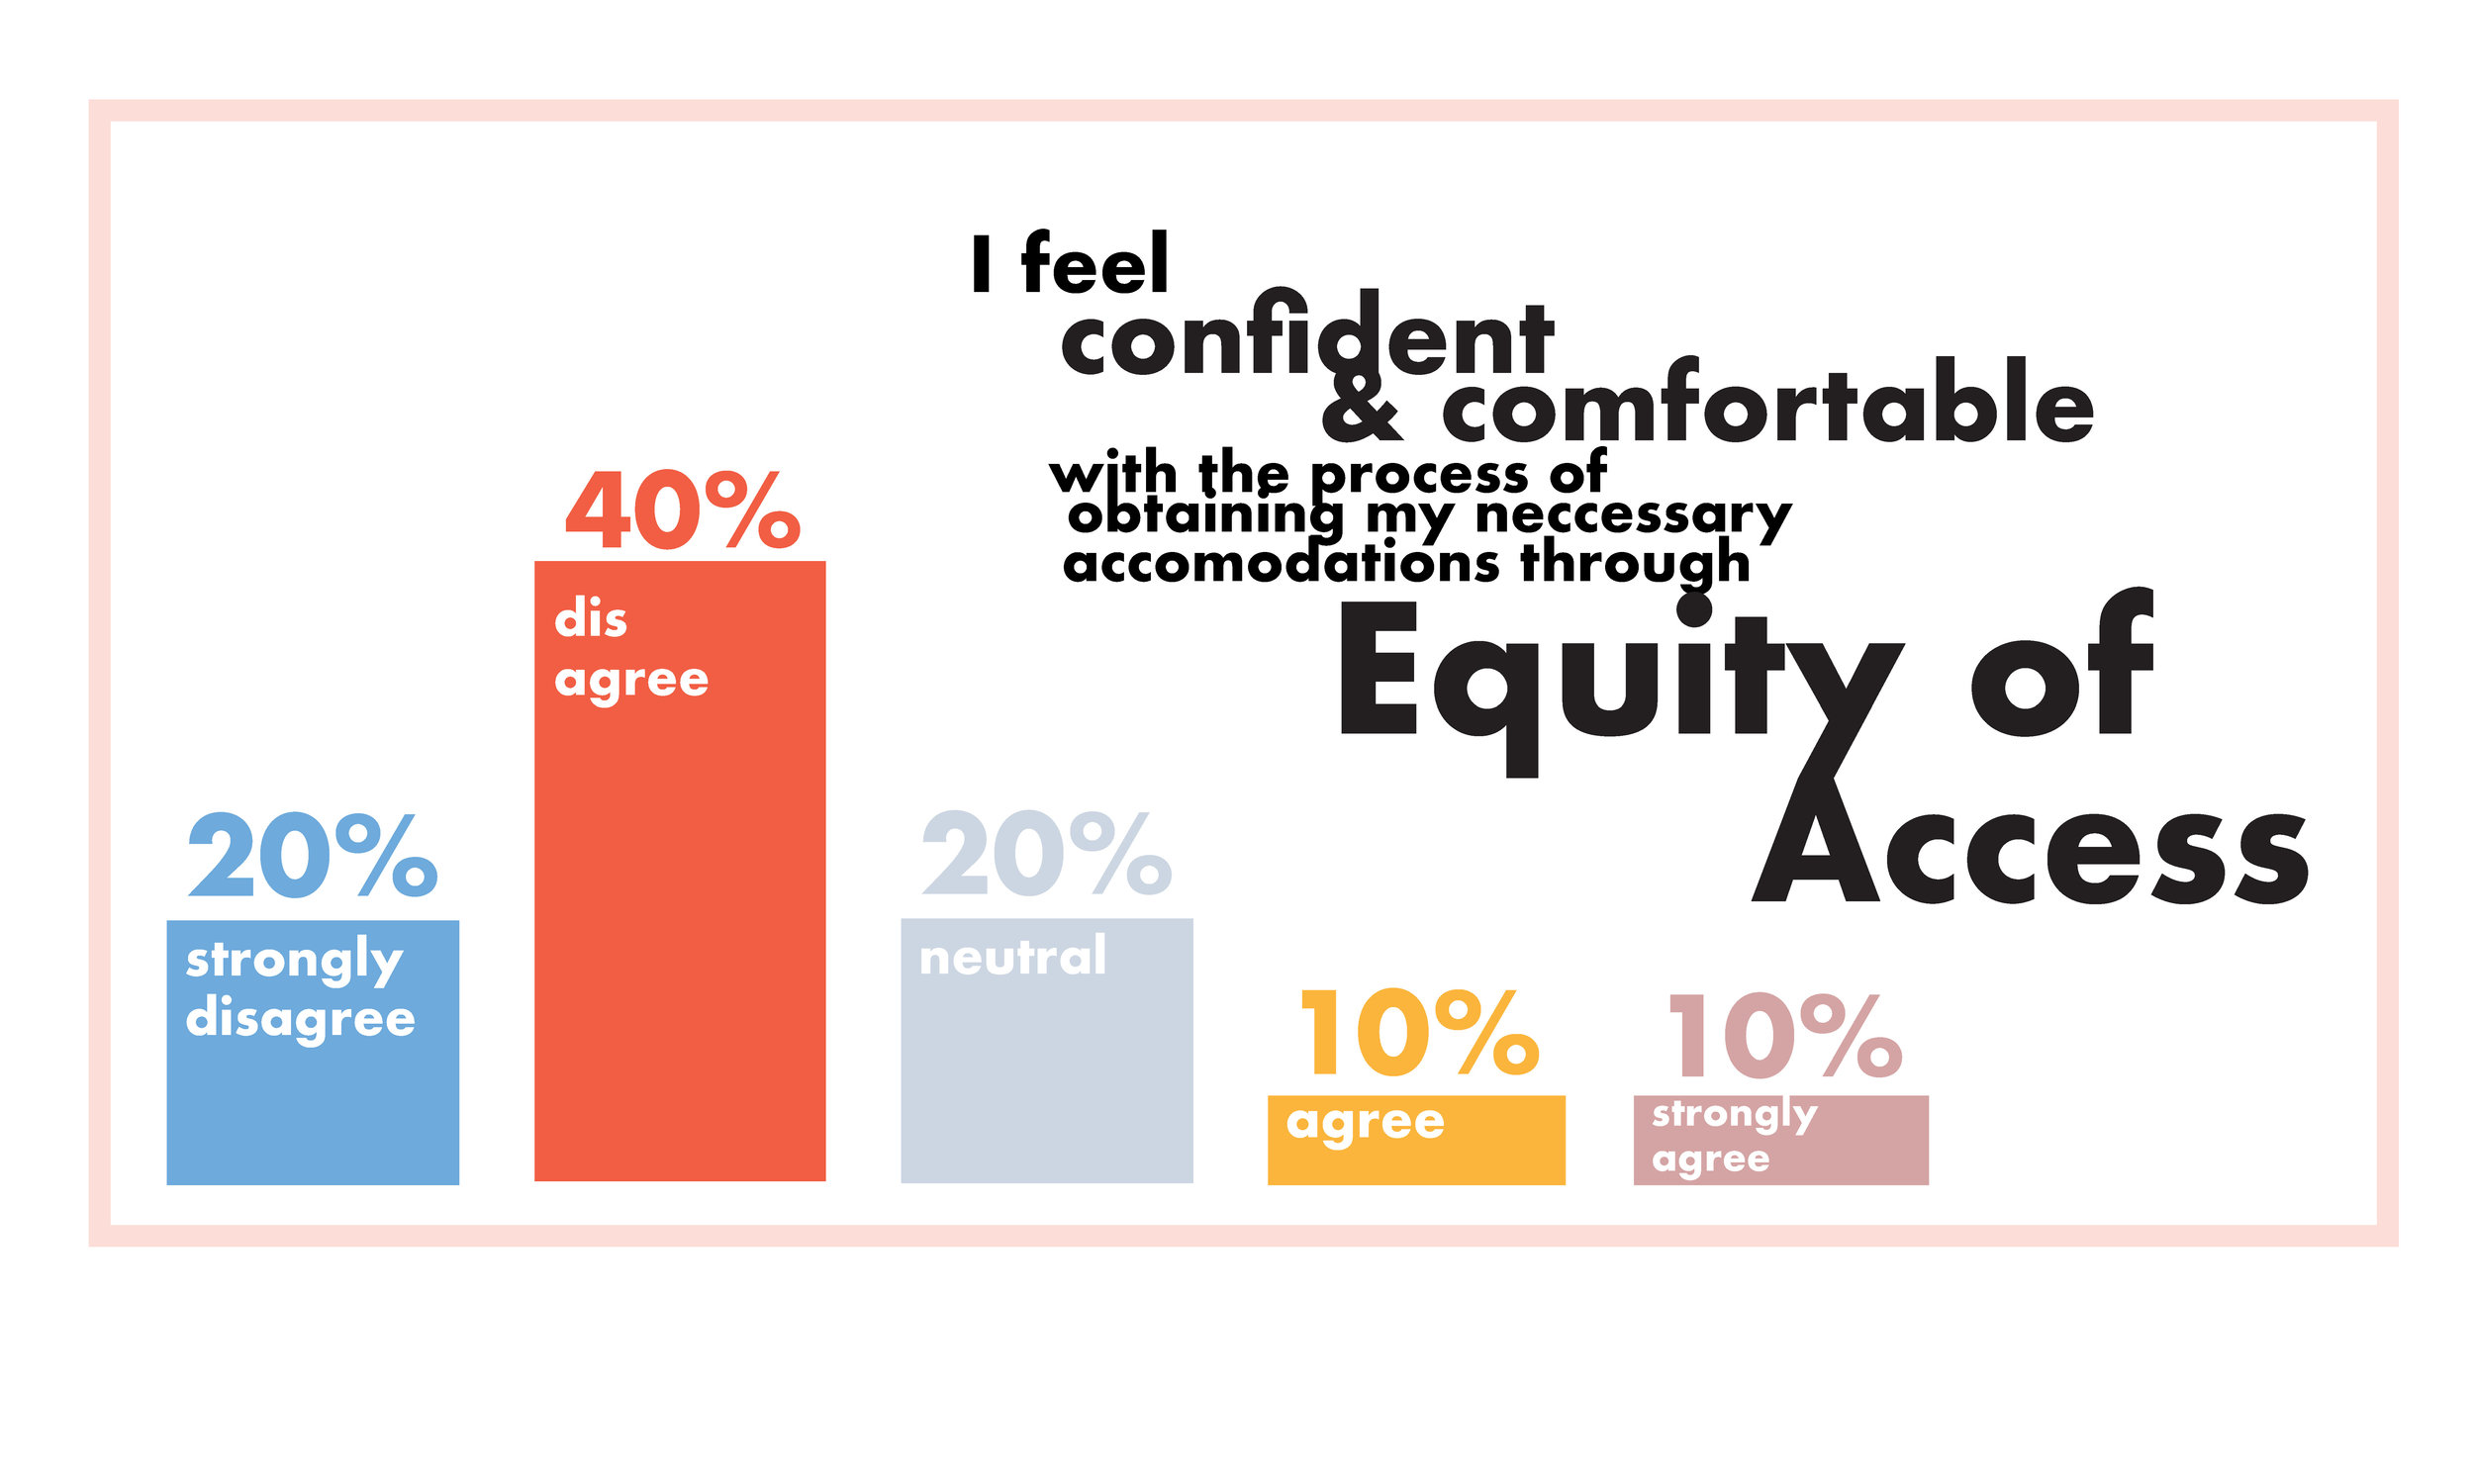 confident in equity of access.jpg